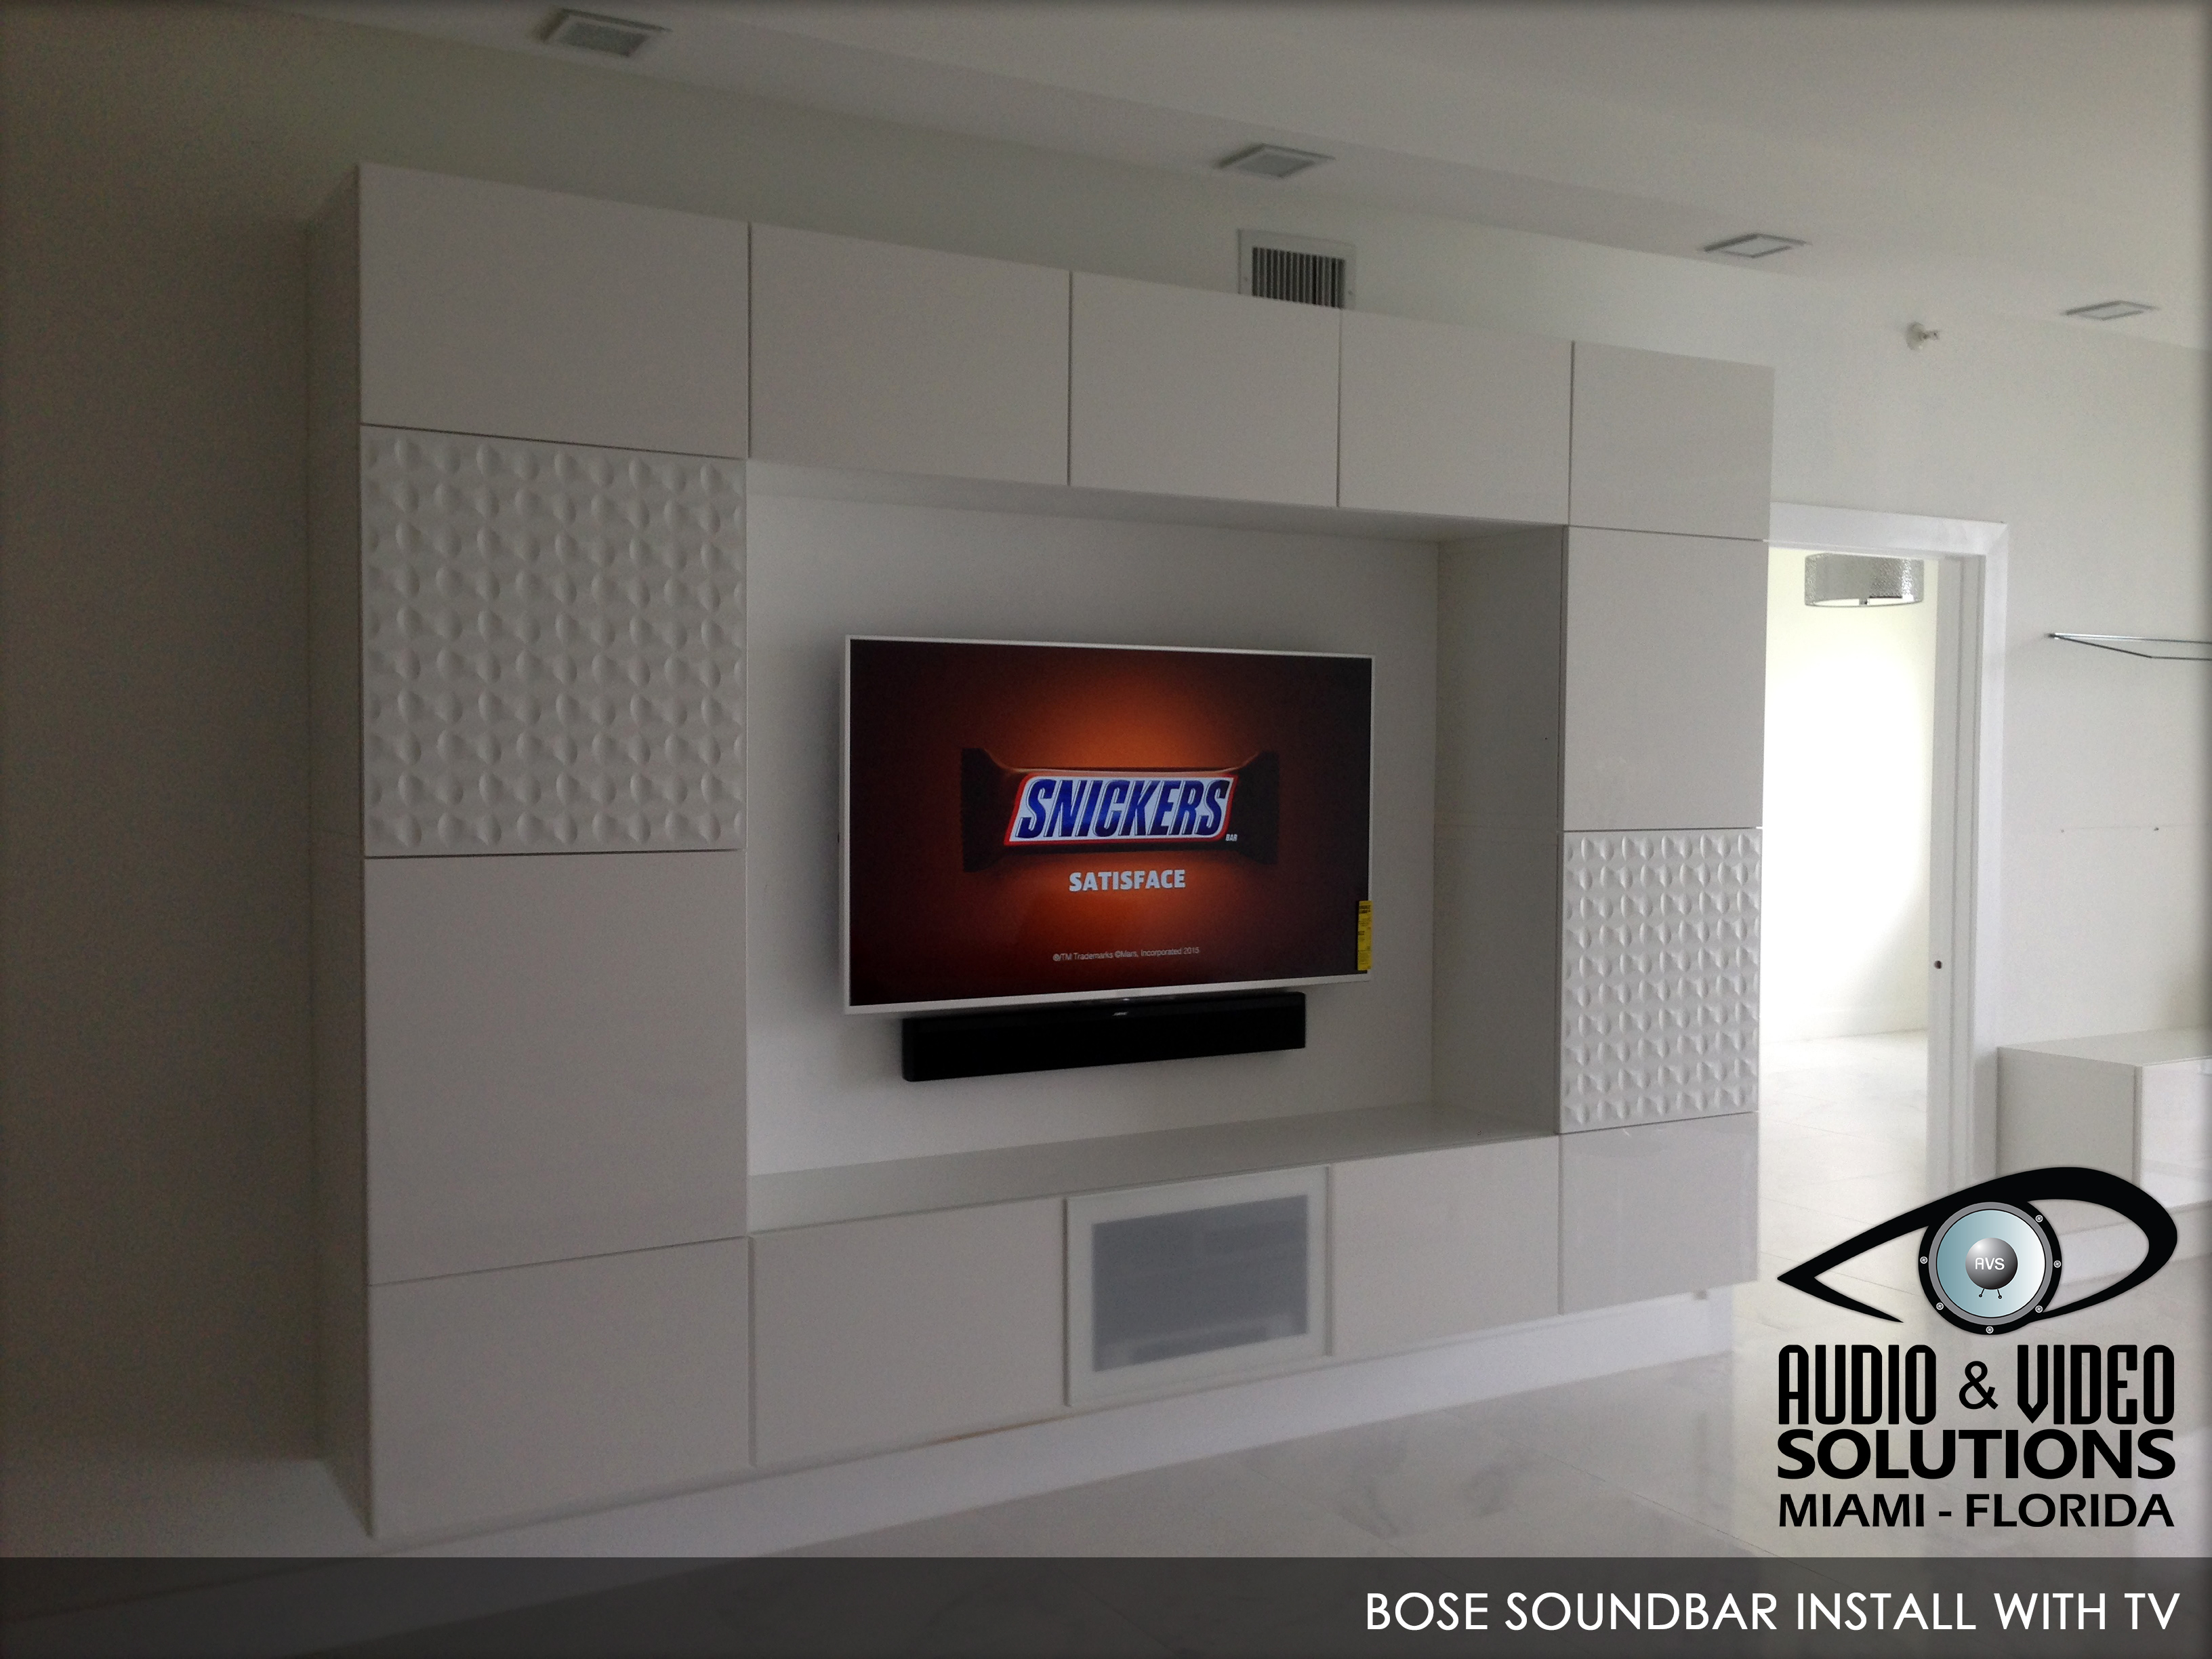 BOSE Soundbar Install with TV